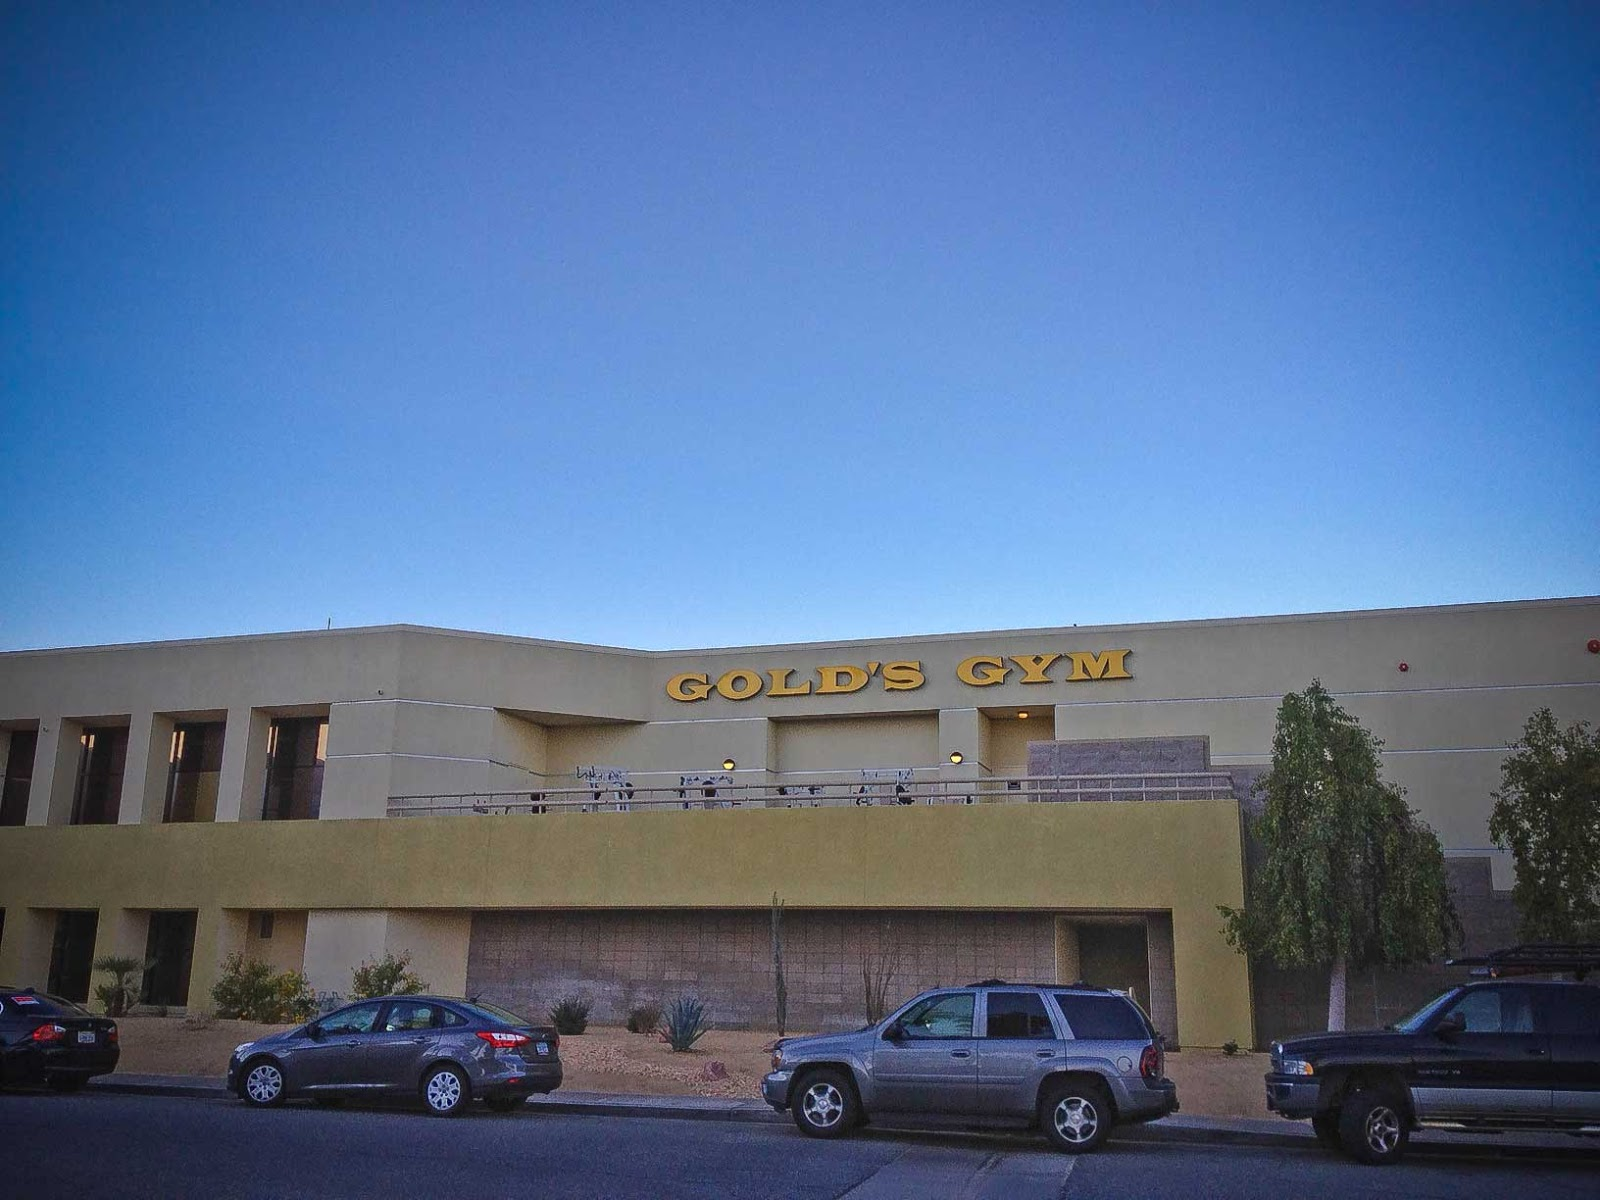 gold gym palm springs Gold's Gym jumps on the anti gay marriage bandwagon.